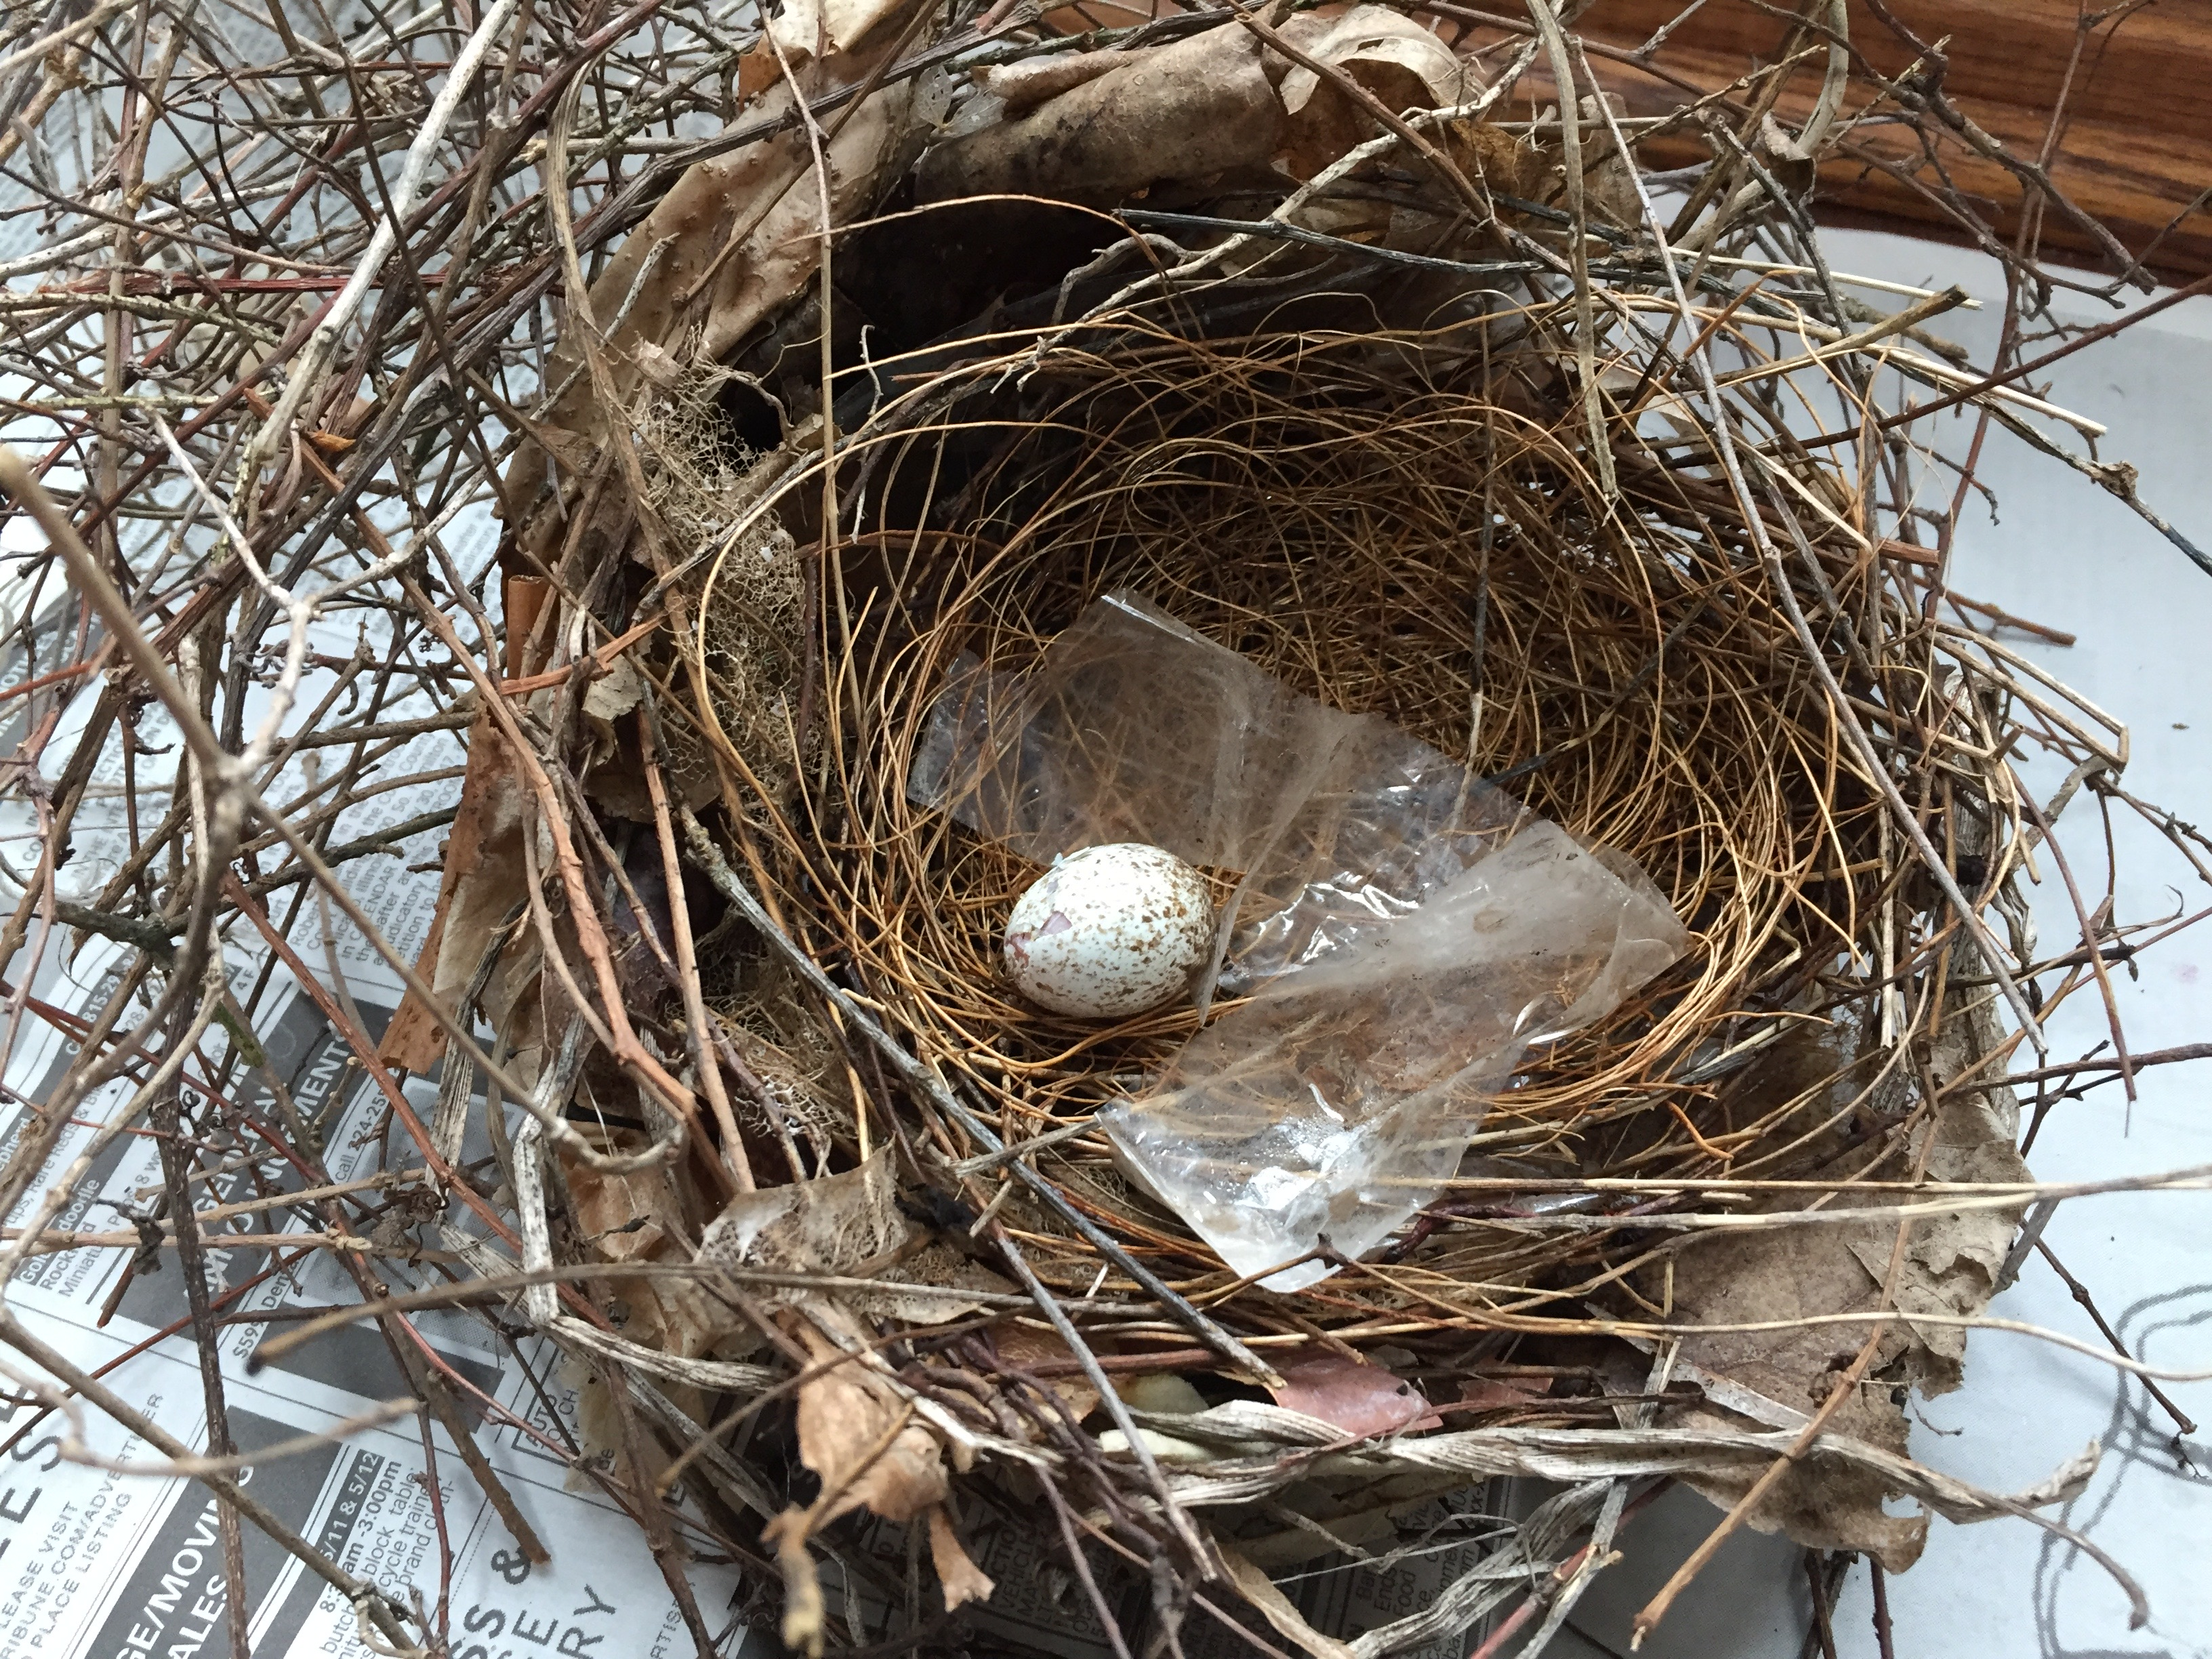 fallen nest and egg